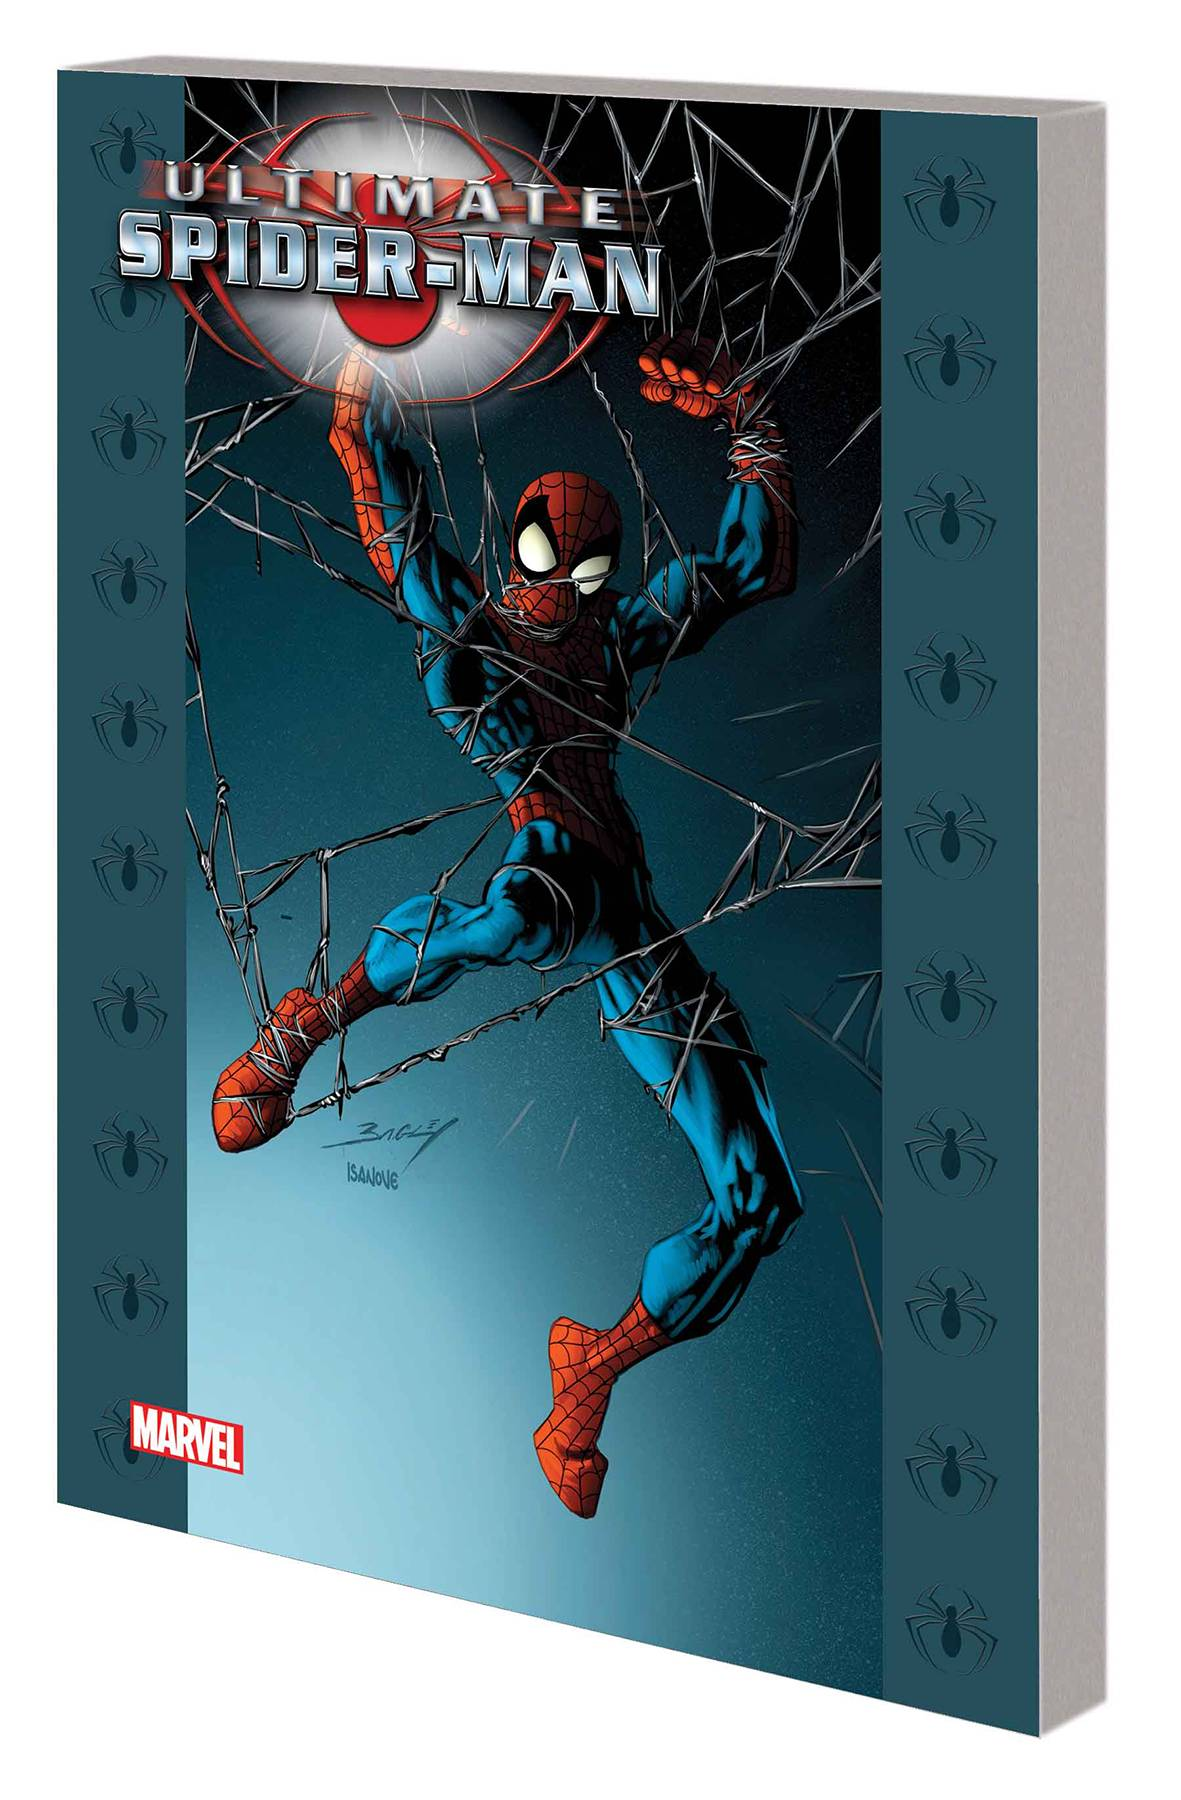 ULTIMATE SPIDER-MAN ULTIMATE COLLECTION TP 7.jpg